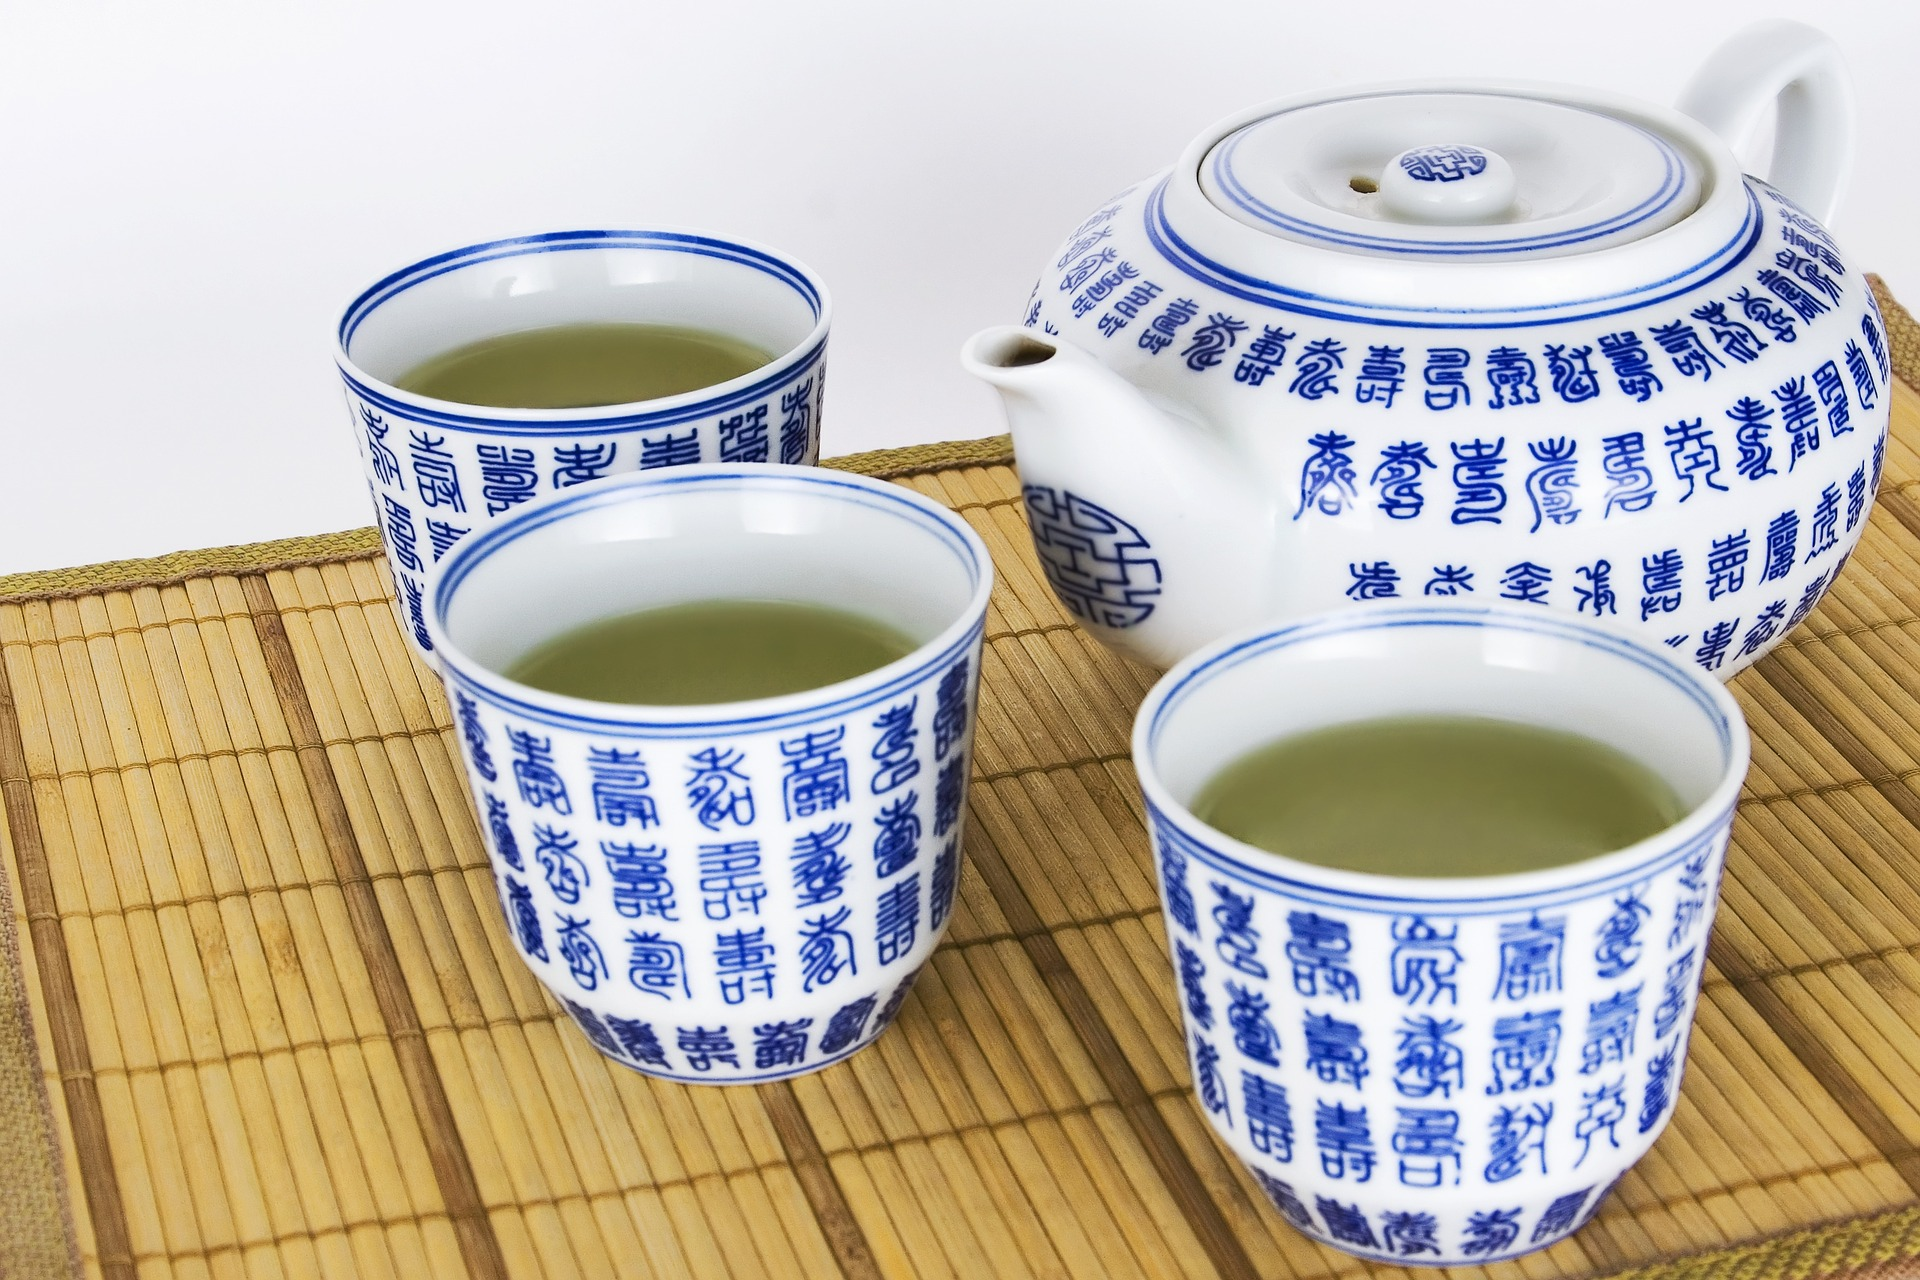 Did you know consuming green tea had these health benefits?